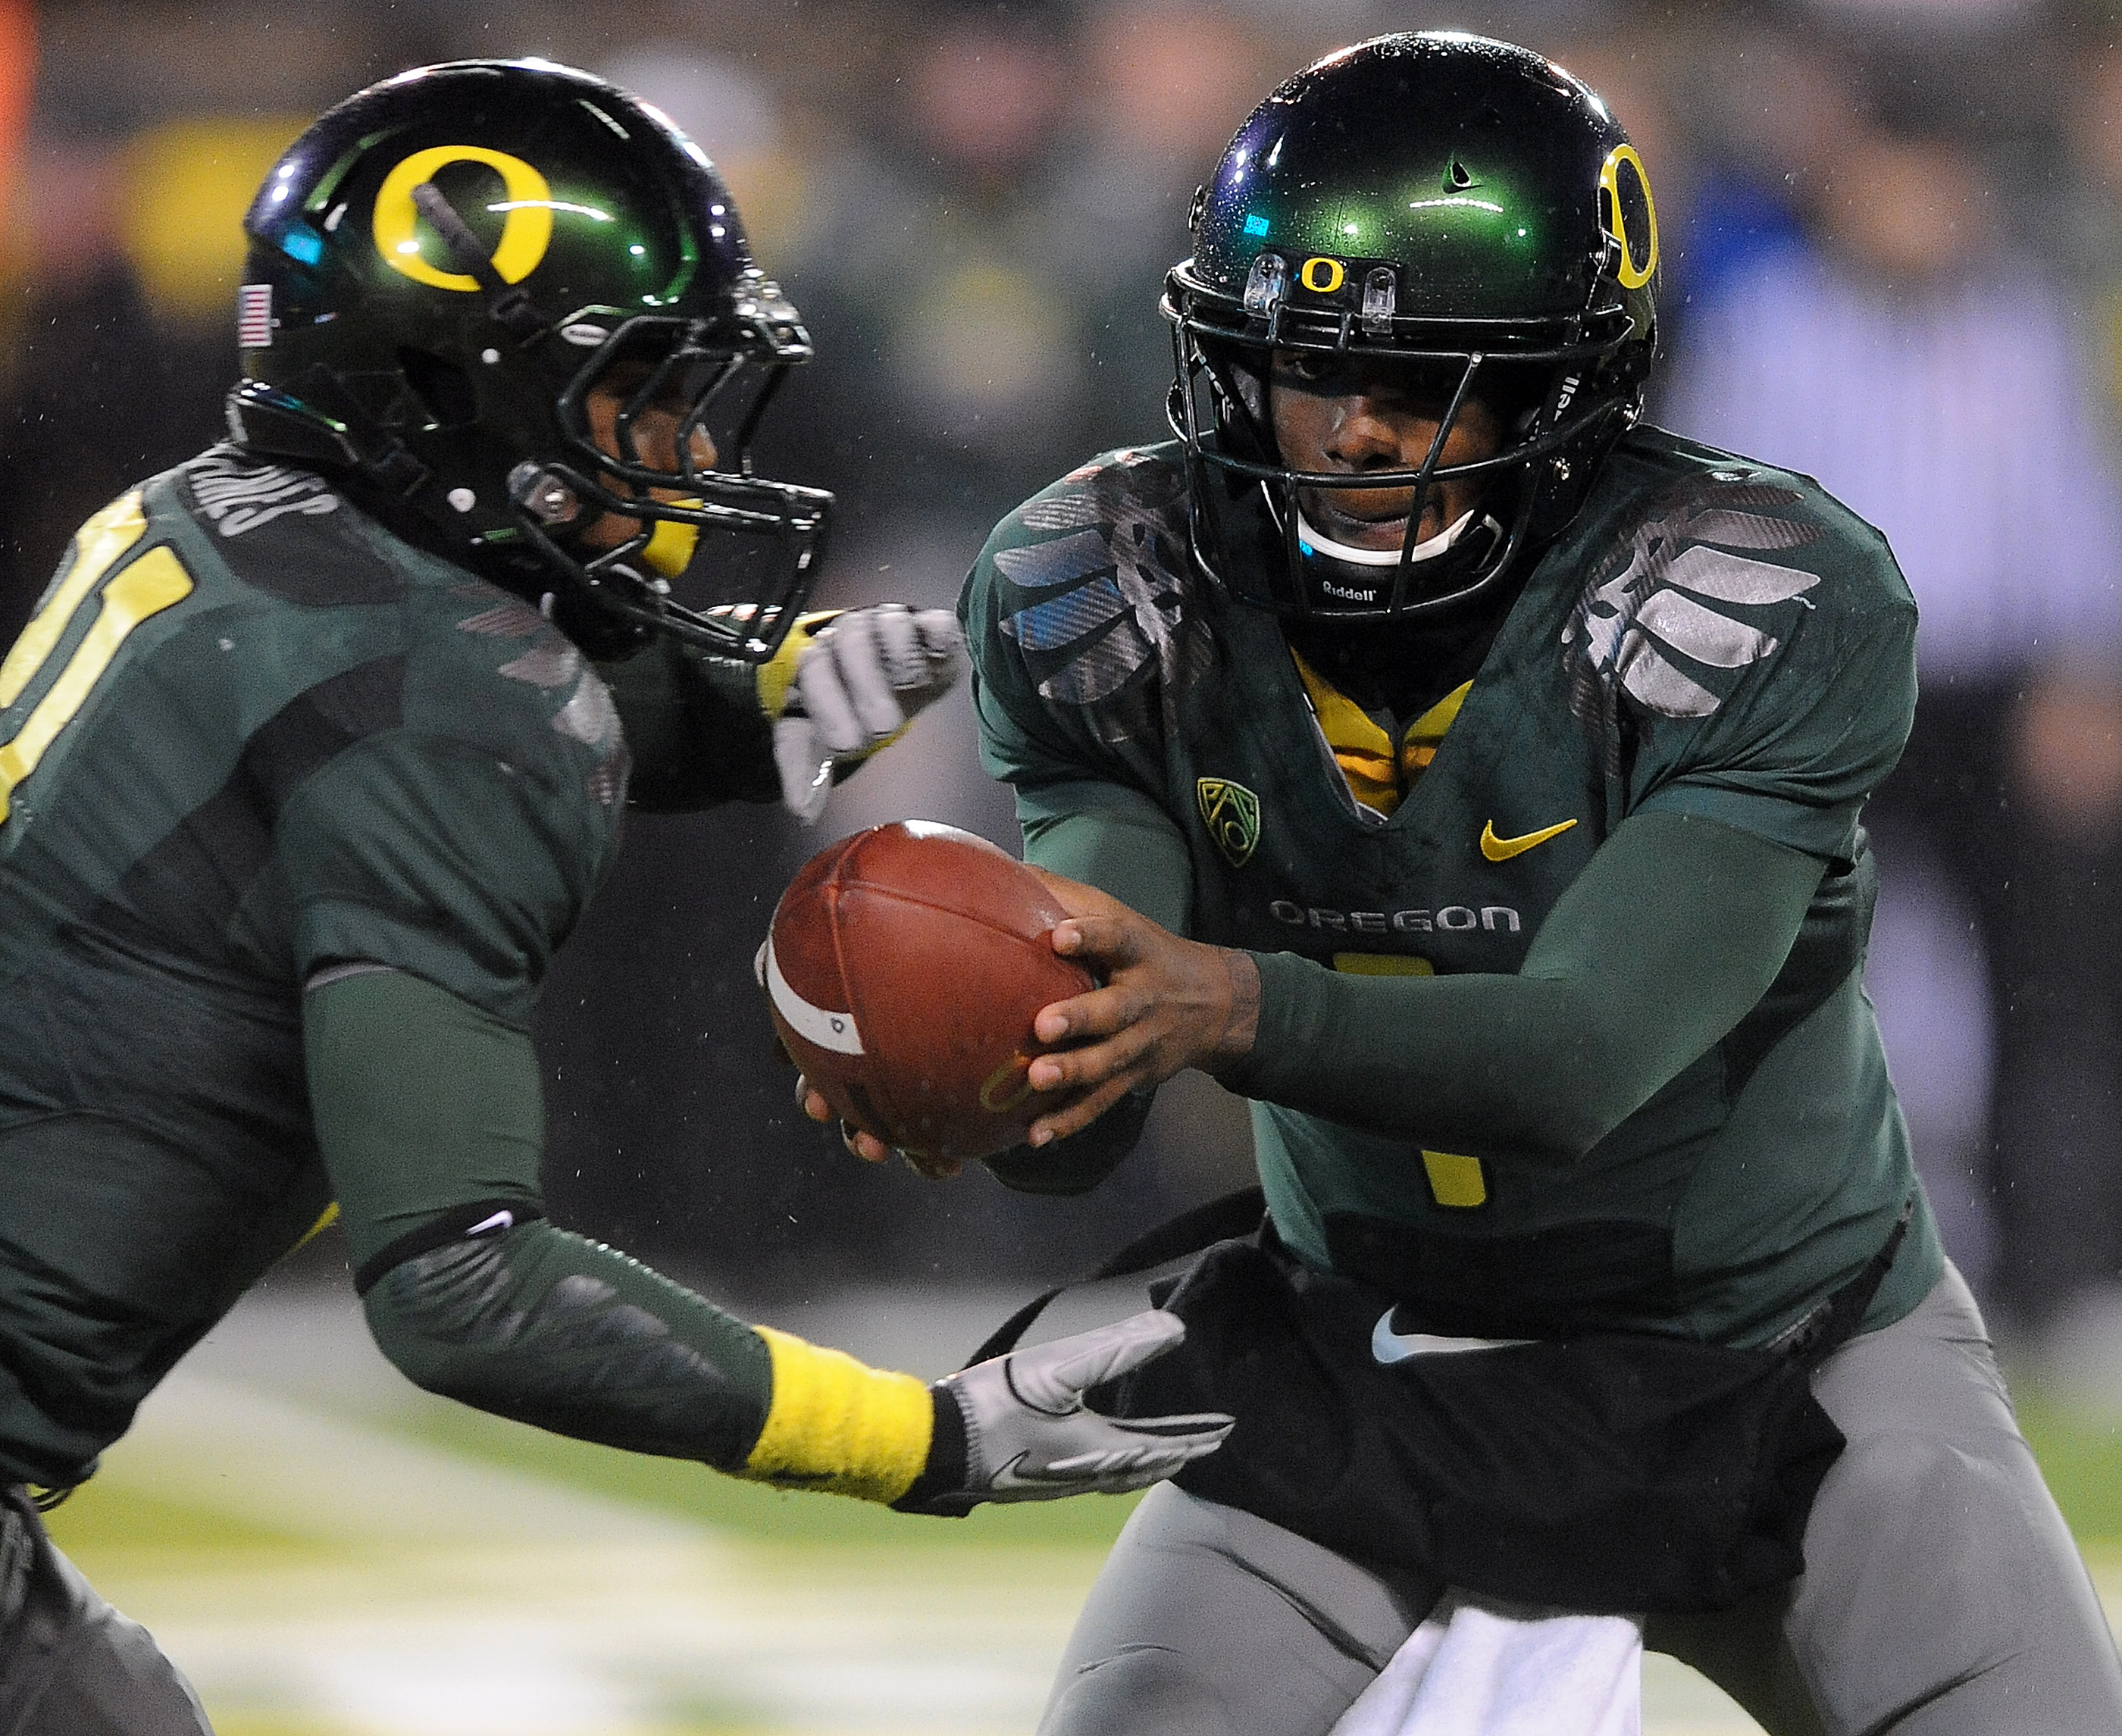 EUGENE, OR - NOVEMBER 26: Quarterback Darron Thomas #1 hands the ball off to running back LaMichael James #21 of the Oregon Ducks in the third quarter of the game against the Arizona Wildcats at Autzen Stadium on November 26, 2010 in Eugene, Oregon. The D